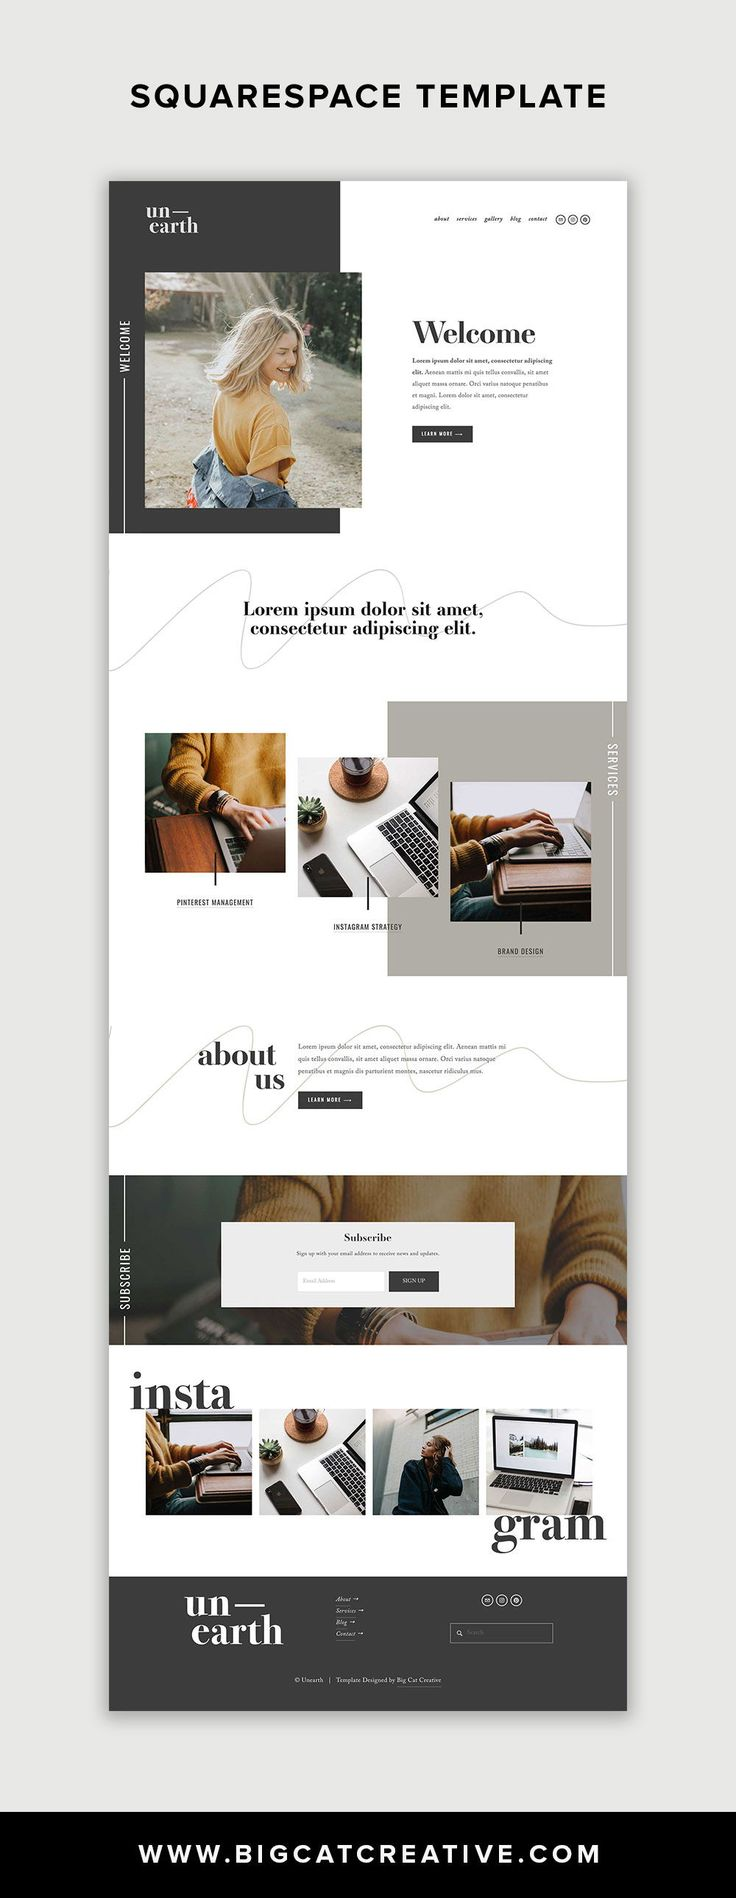 Unearth Squarespace Template is a modern and artistic website template that is p...